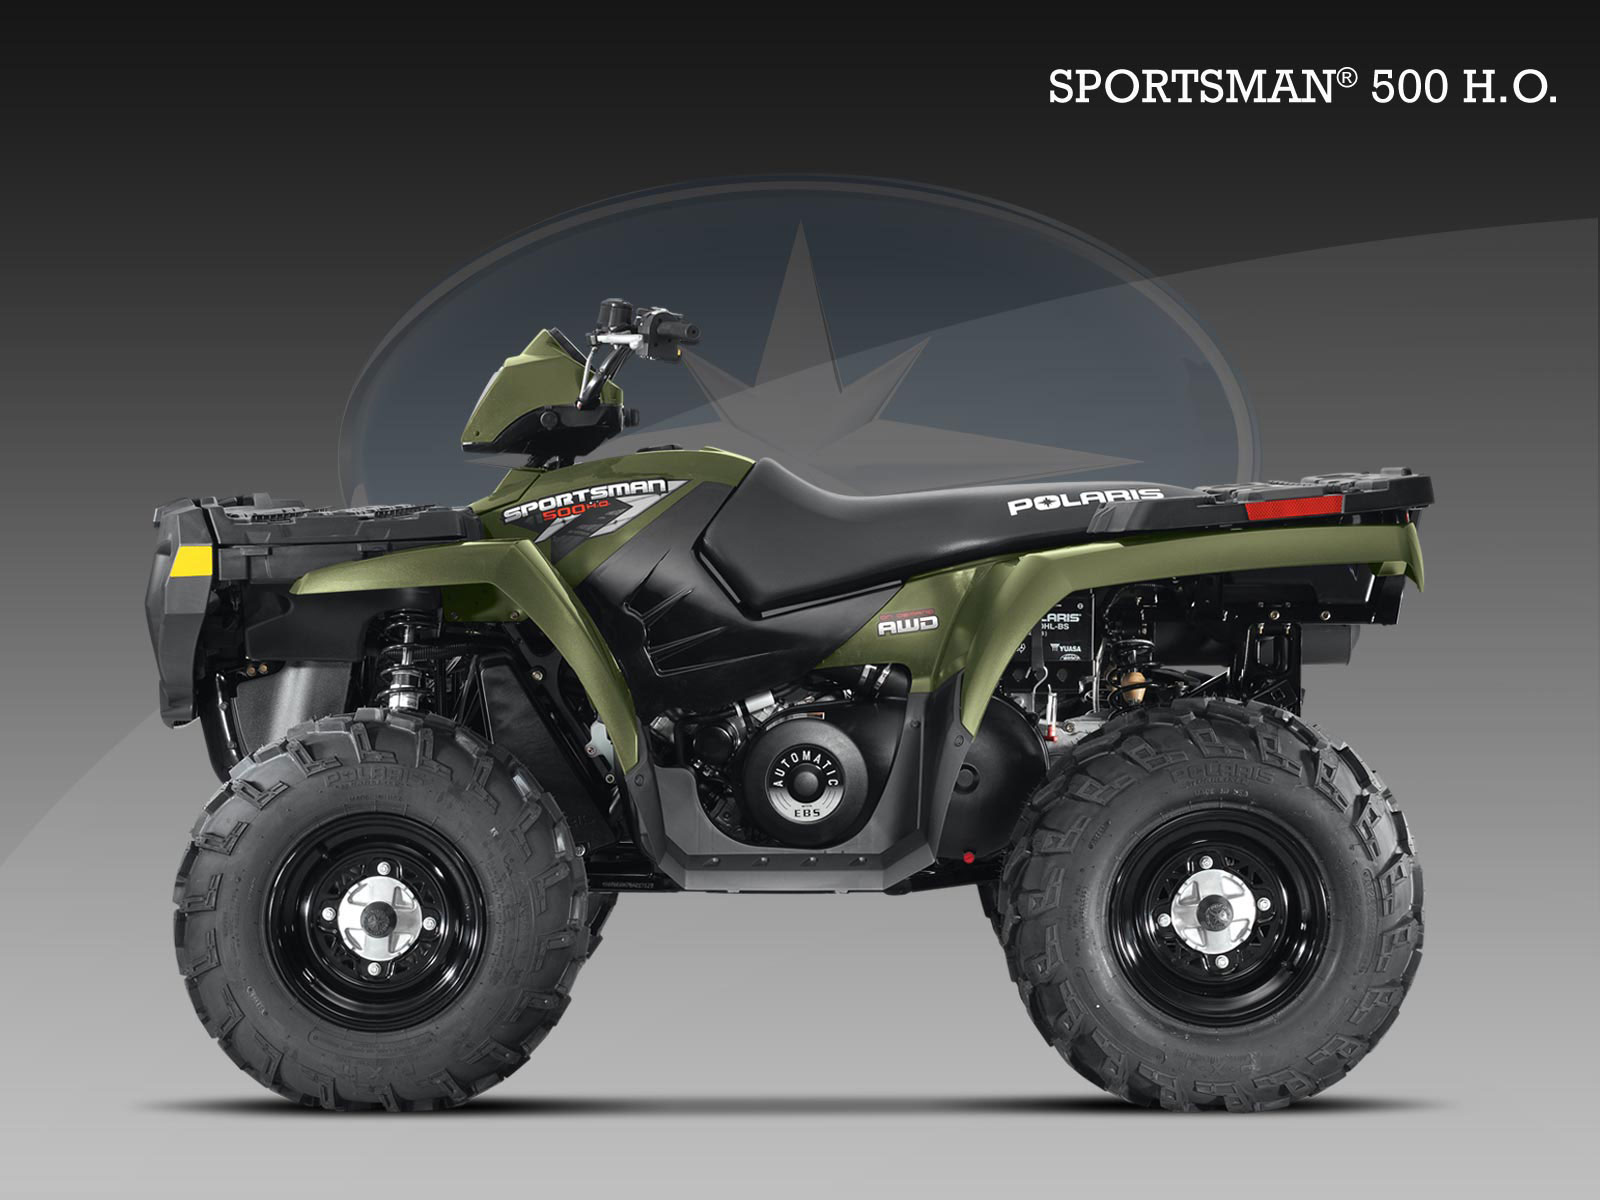 Polaris Sportsman 500 H O Specs 2009 2010 Autoevolution